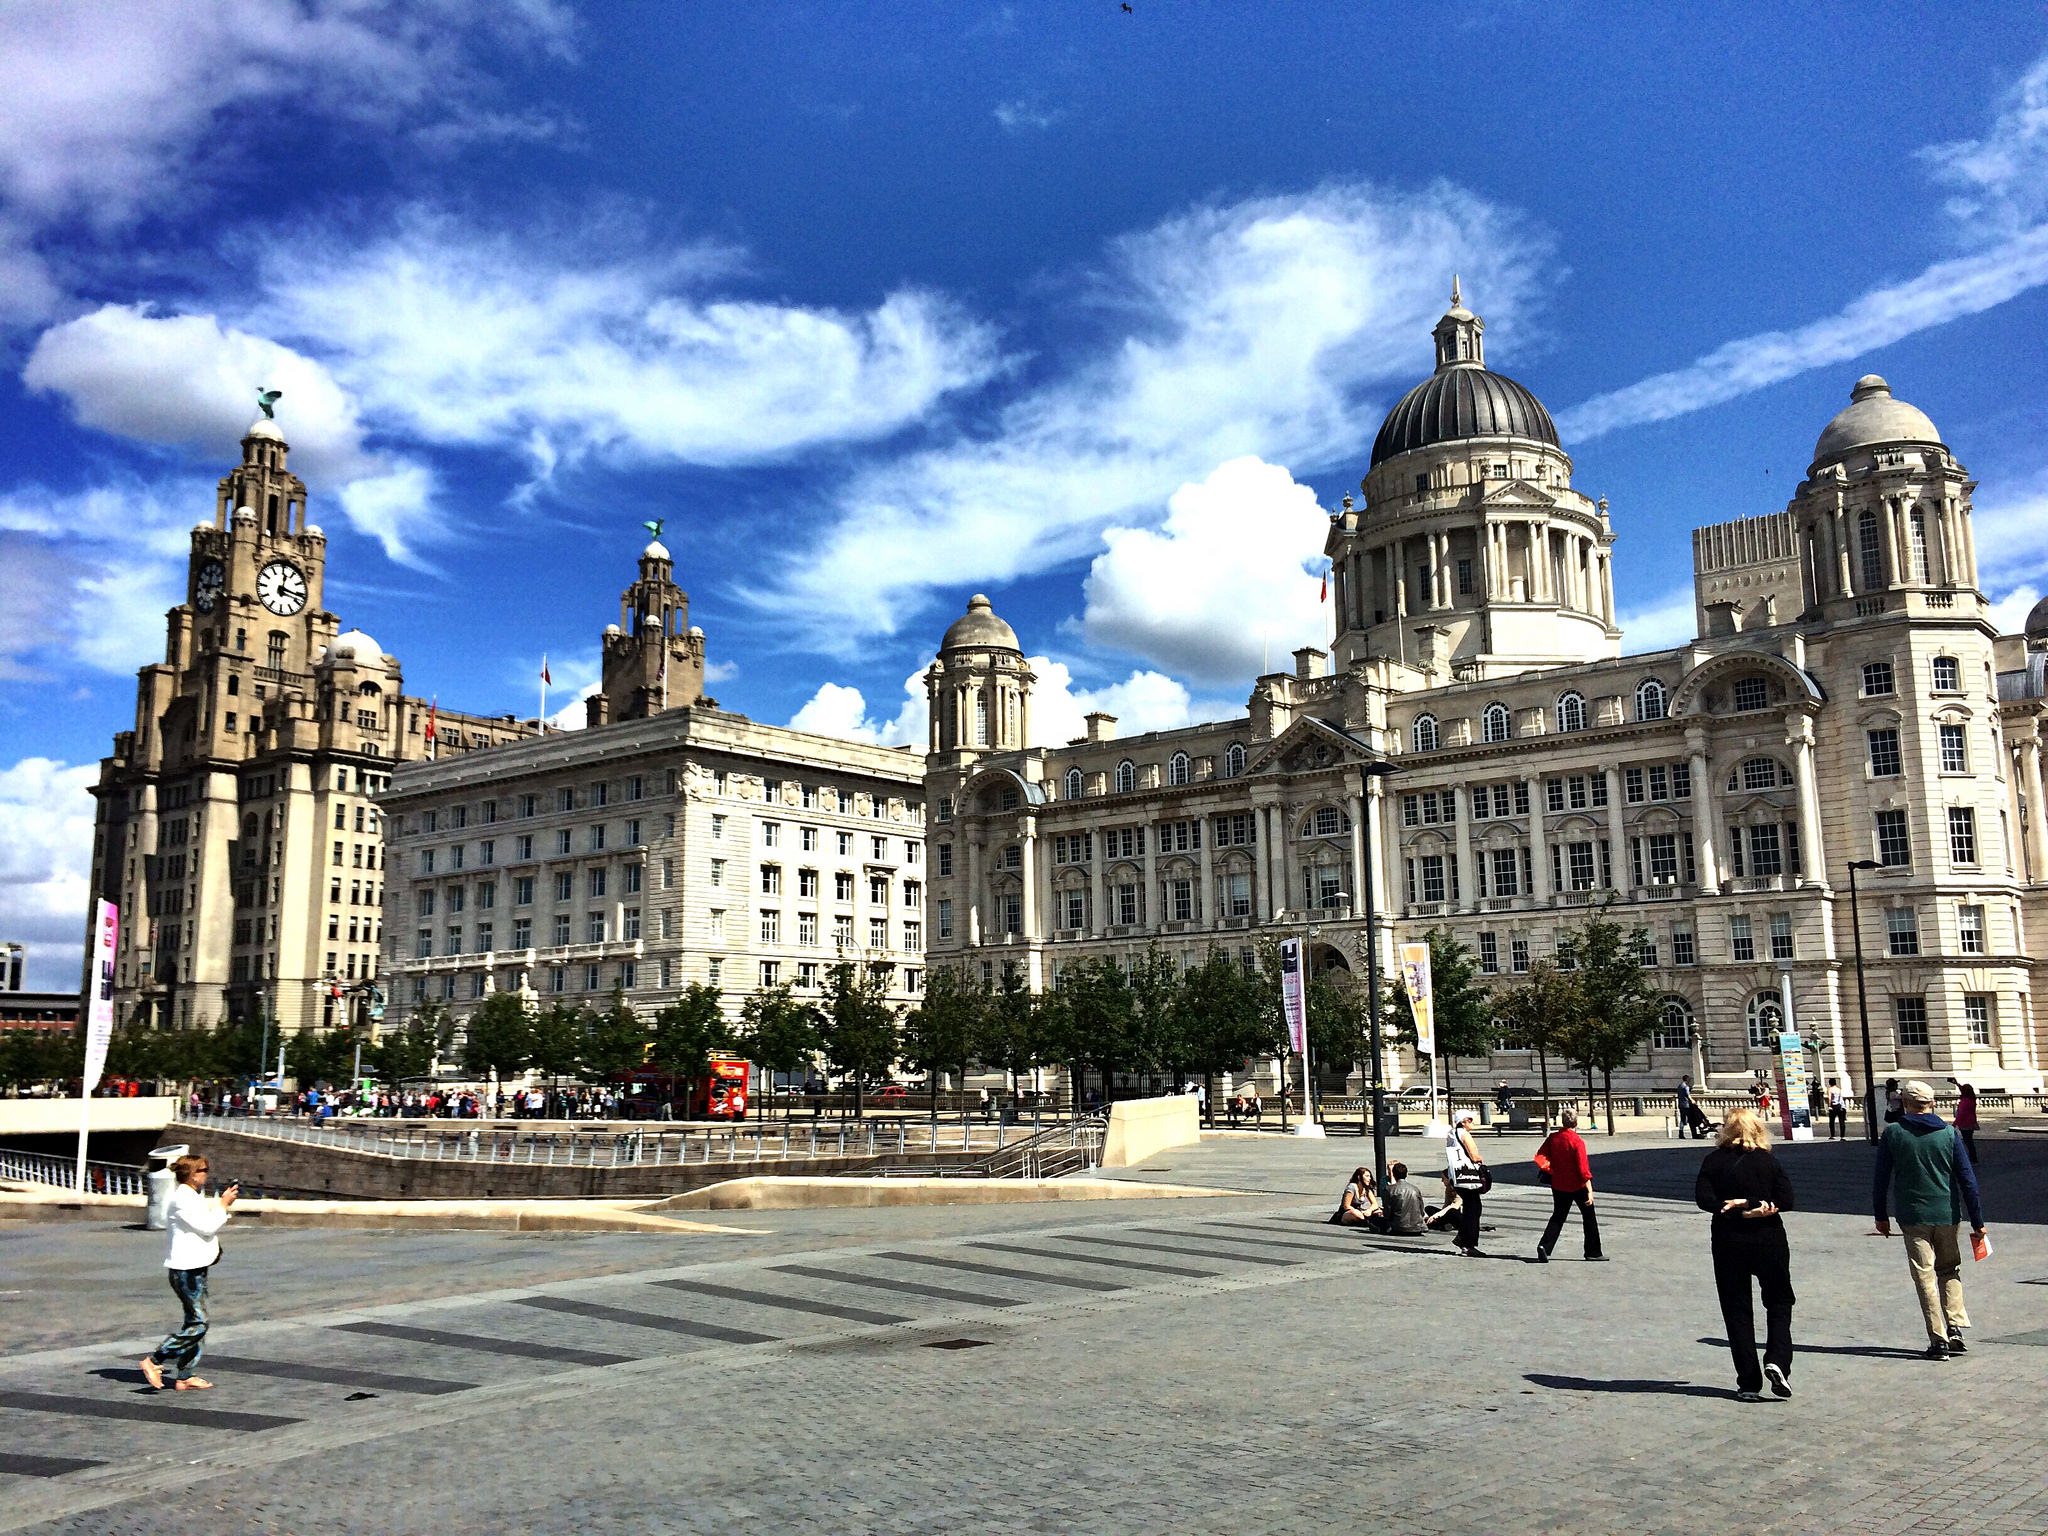 Three Graces - A Walking Tour of #Liverpool's #UNESCO World Heritage Sites #travel #UK